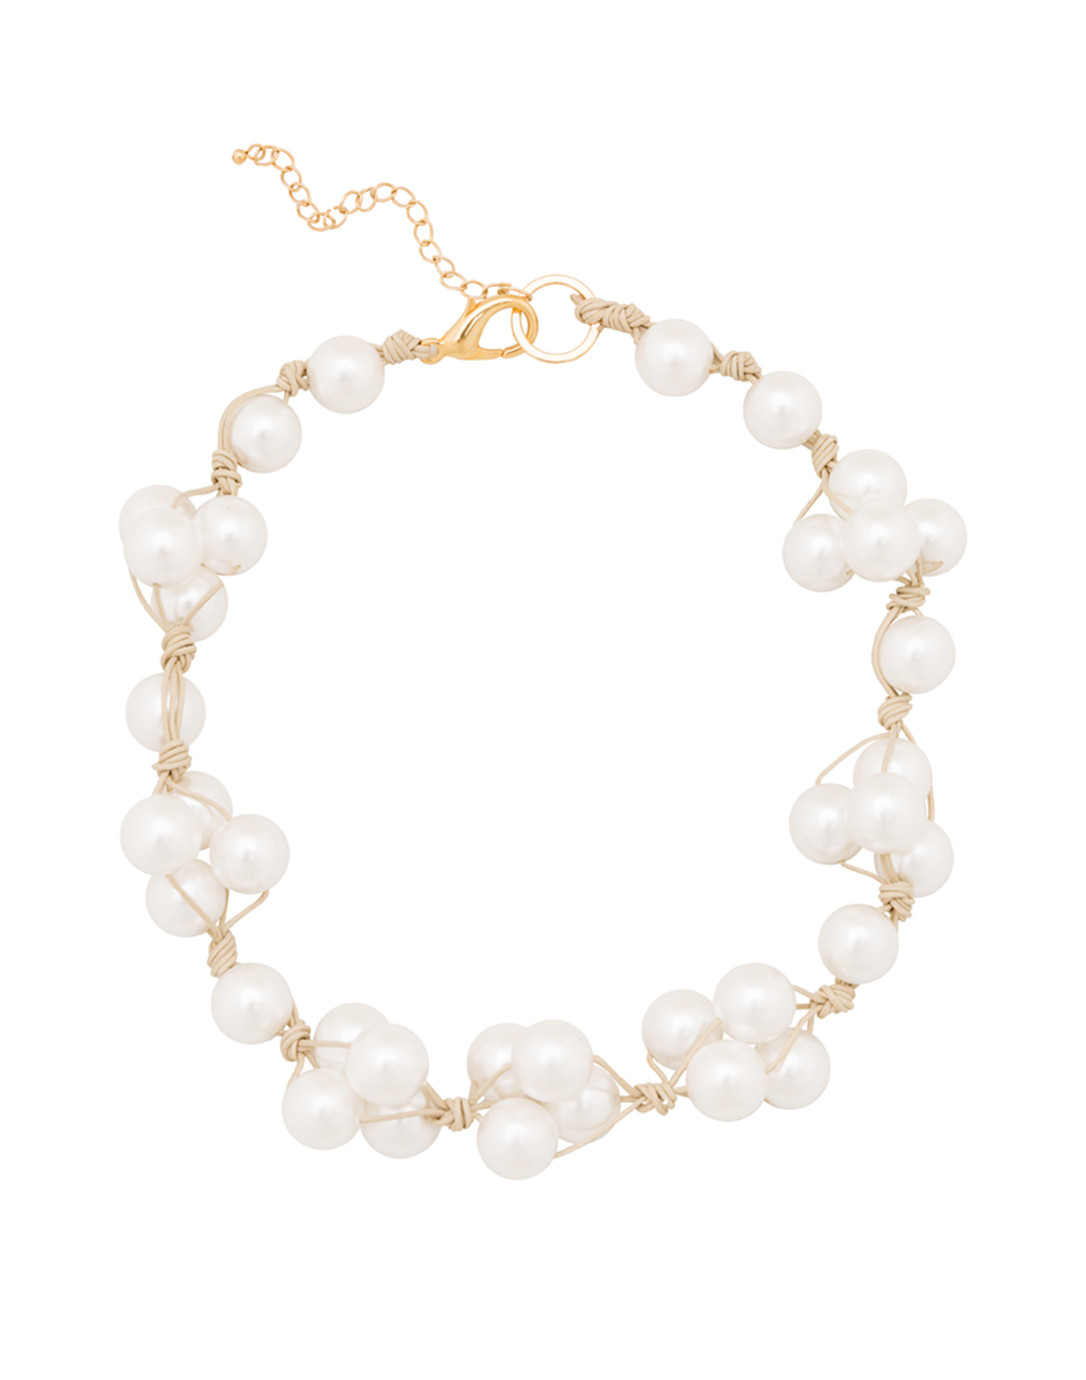 White pearl woven necklace deborah grivas halsbrook for White pearl